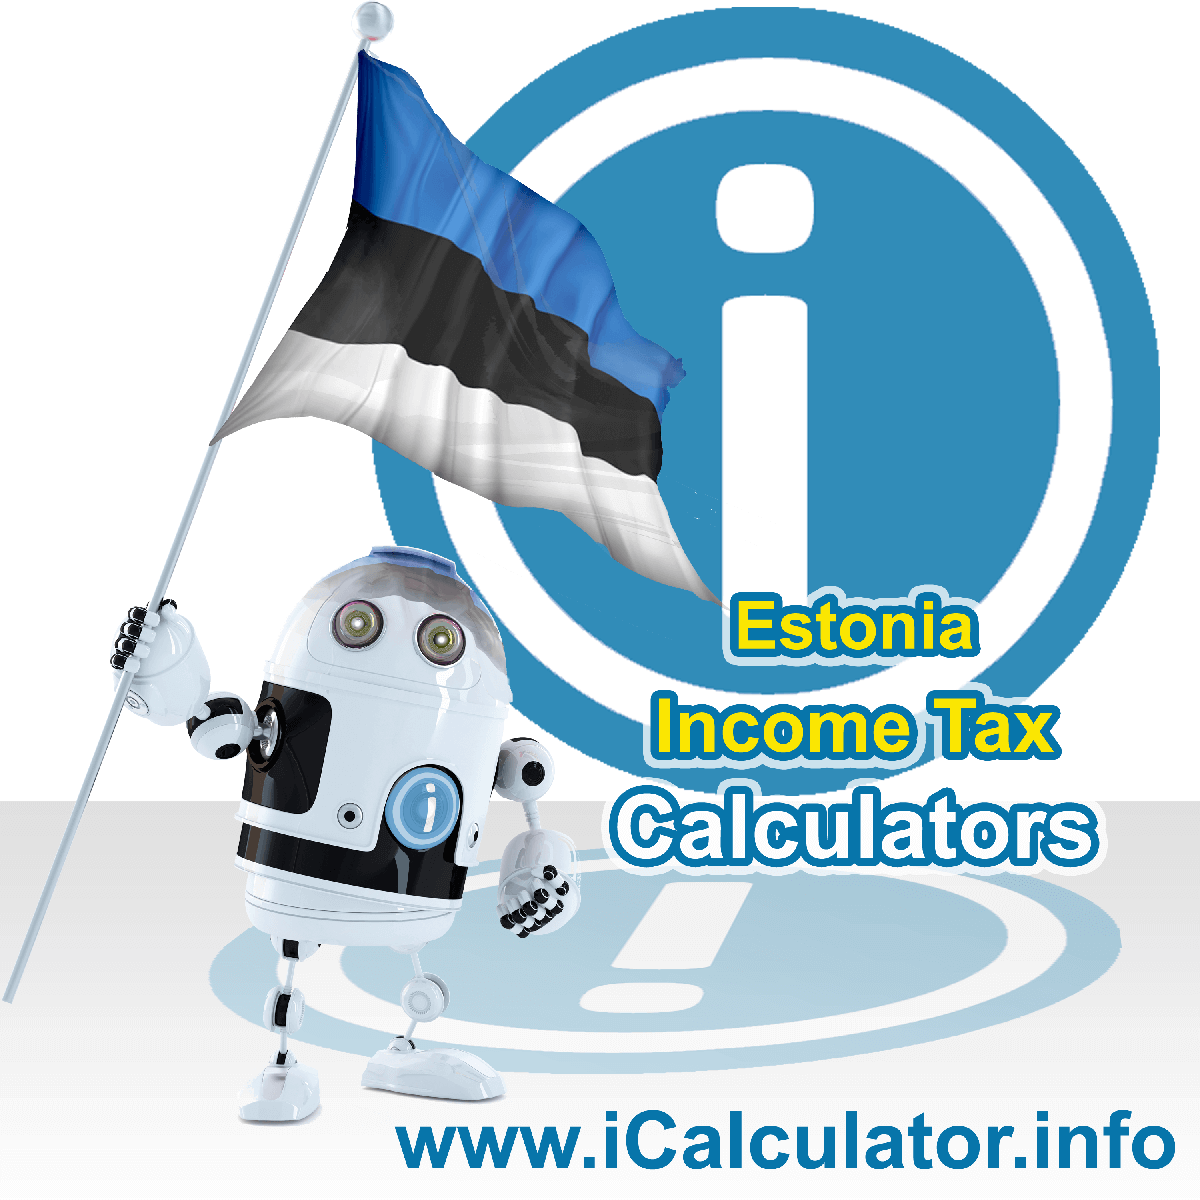 Estonia Income Tax Calculator. This image shows a new employer in Estonia calculating the annual payroll costs based on multiple payroll payments in one year in Estonia using the Estonia income tax calculator to understand their payroll costs in Estonia in 2021